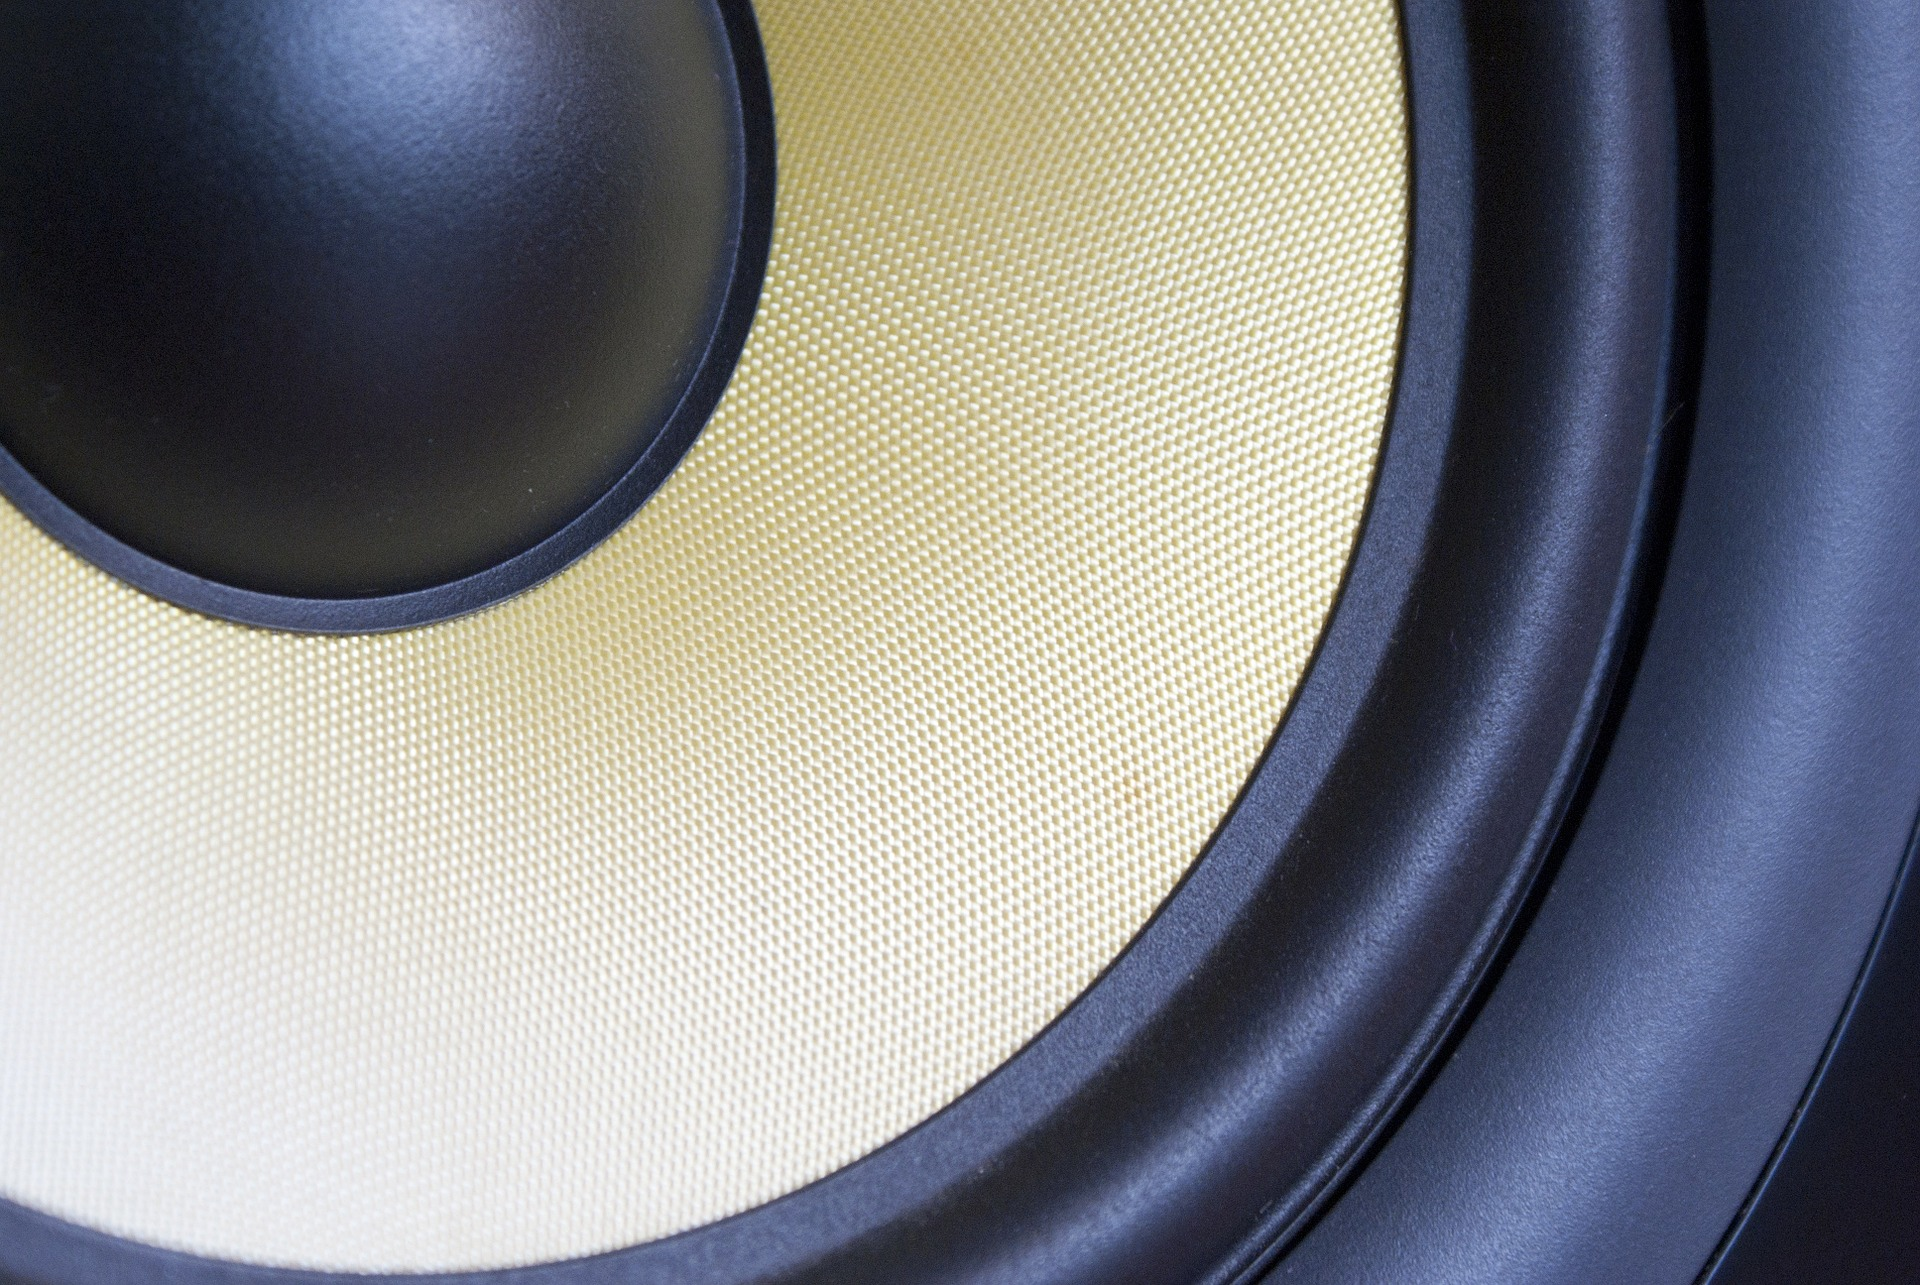 M-Audio BX5 D2 Studio Monitor Review